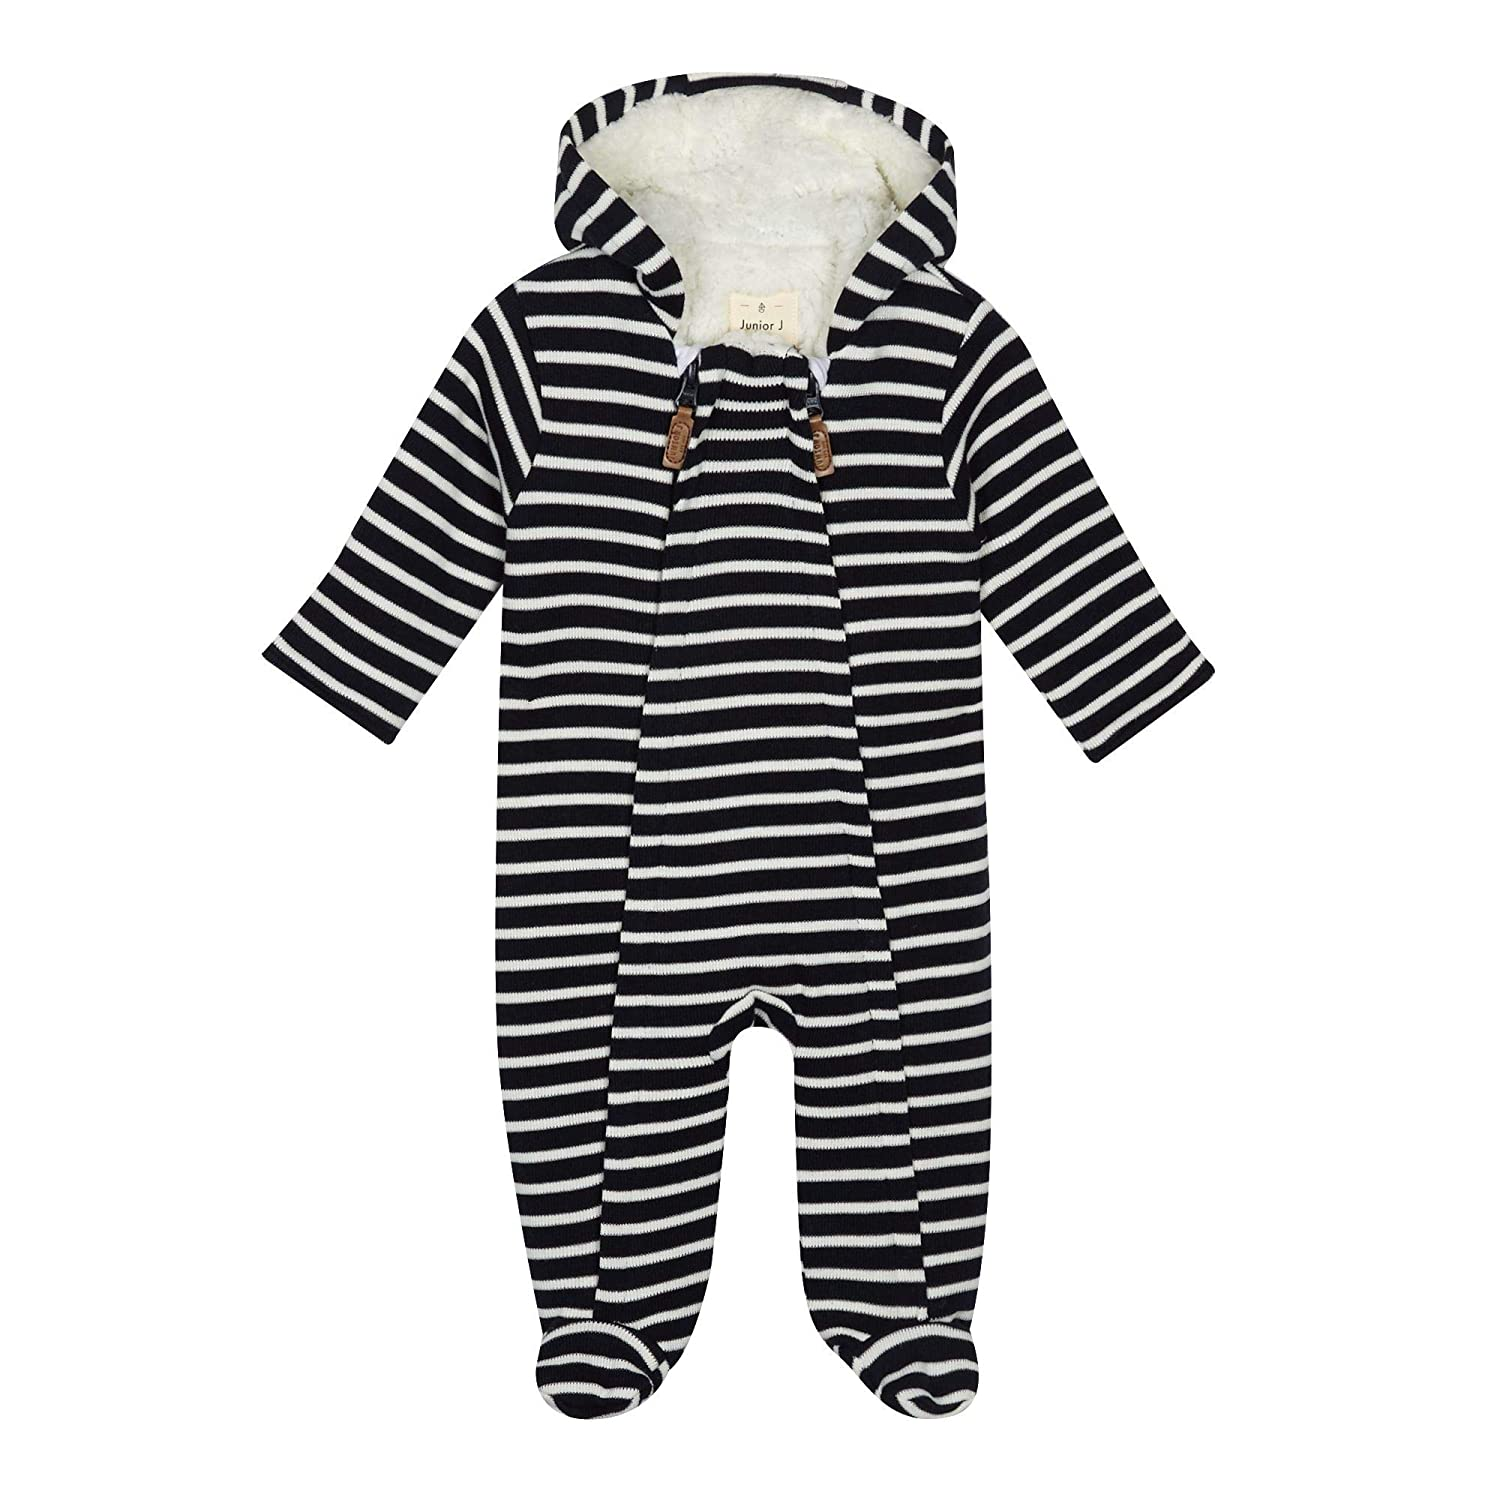 J by Jasper Conran Kids Babies' Navy Striped Snugglesuit